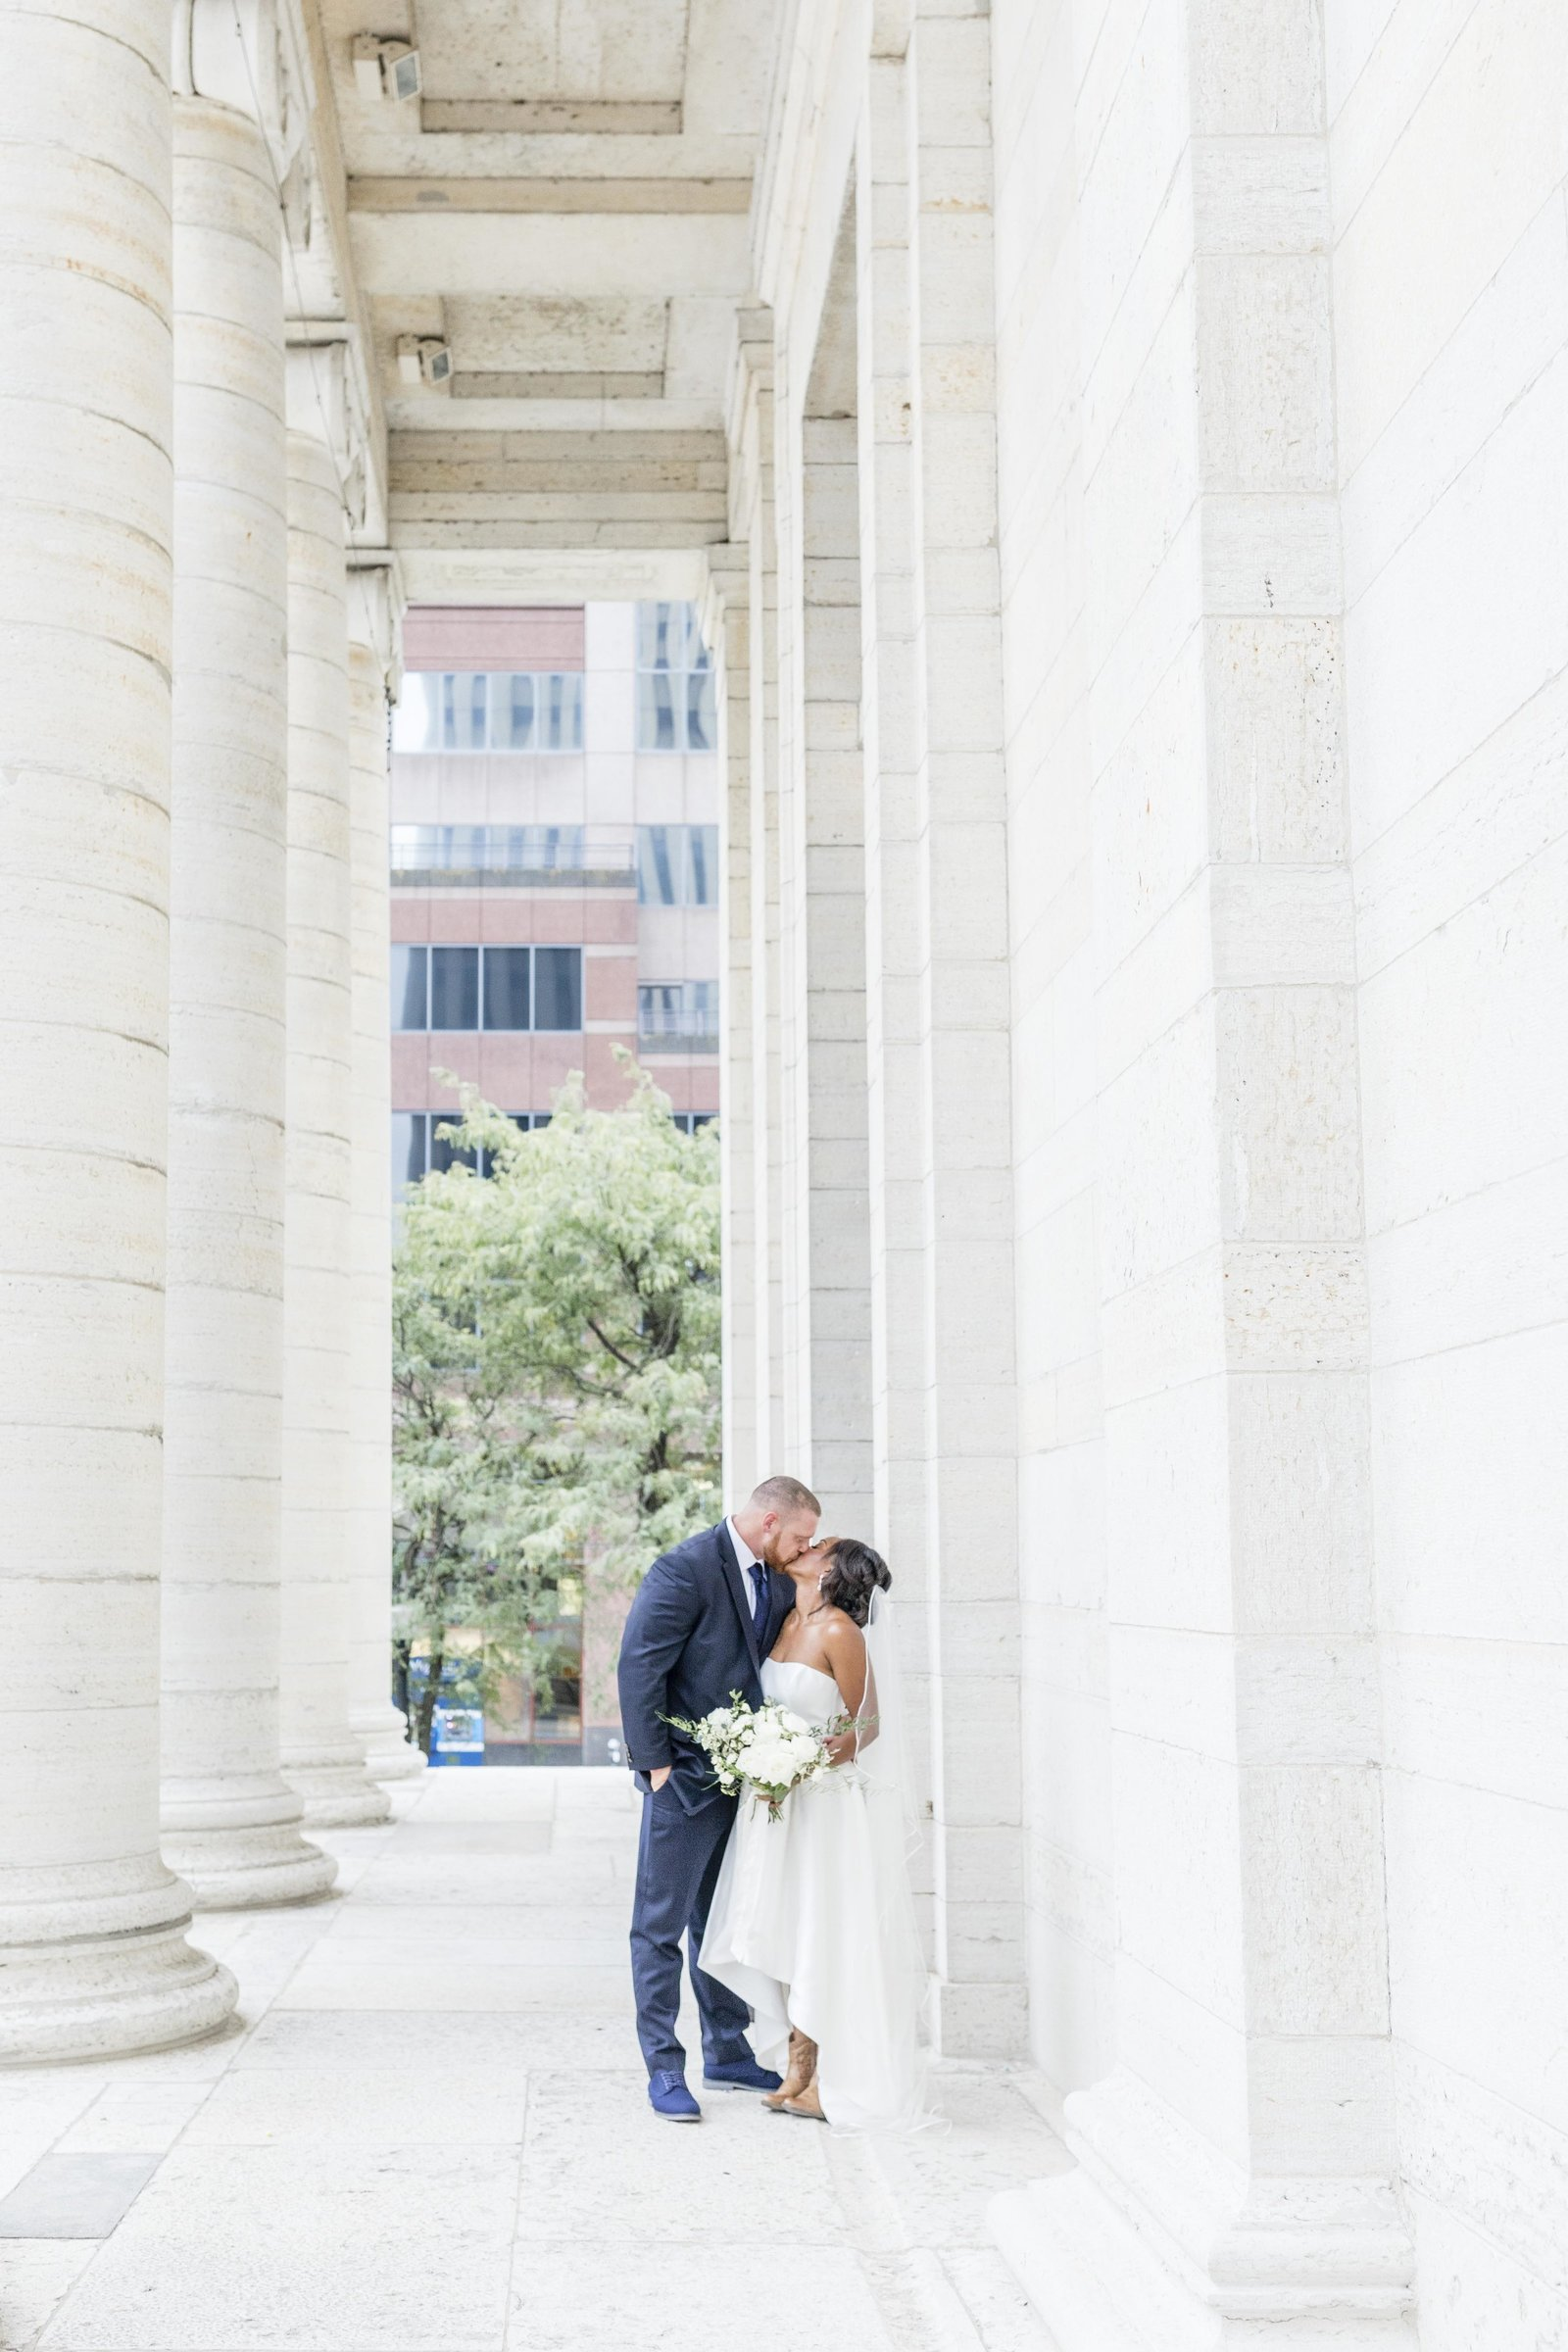 Cassidy_Alane_Photography-Caren_&_Justin_SpragueWedding-Carillon_Park-DaytonClub-Ohio_Wedding_Photographer-1089